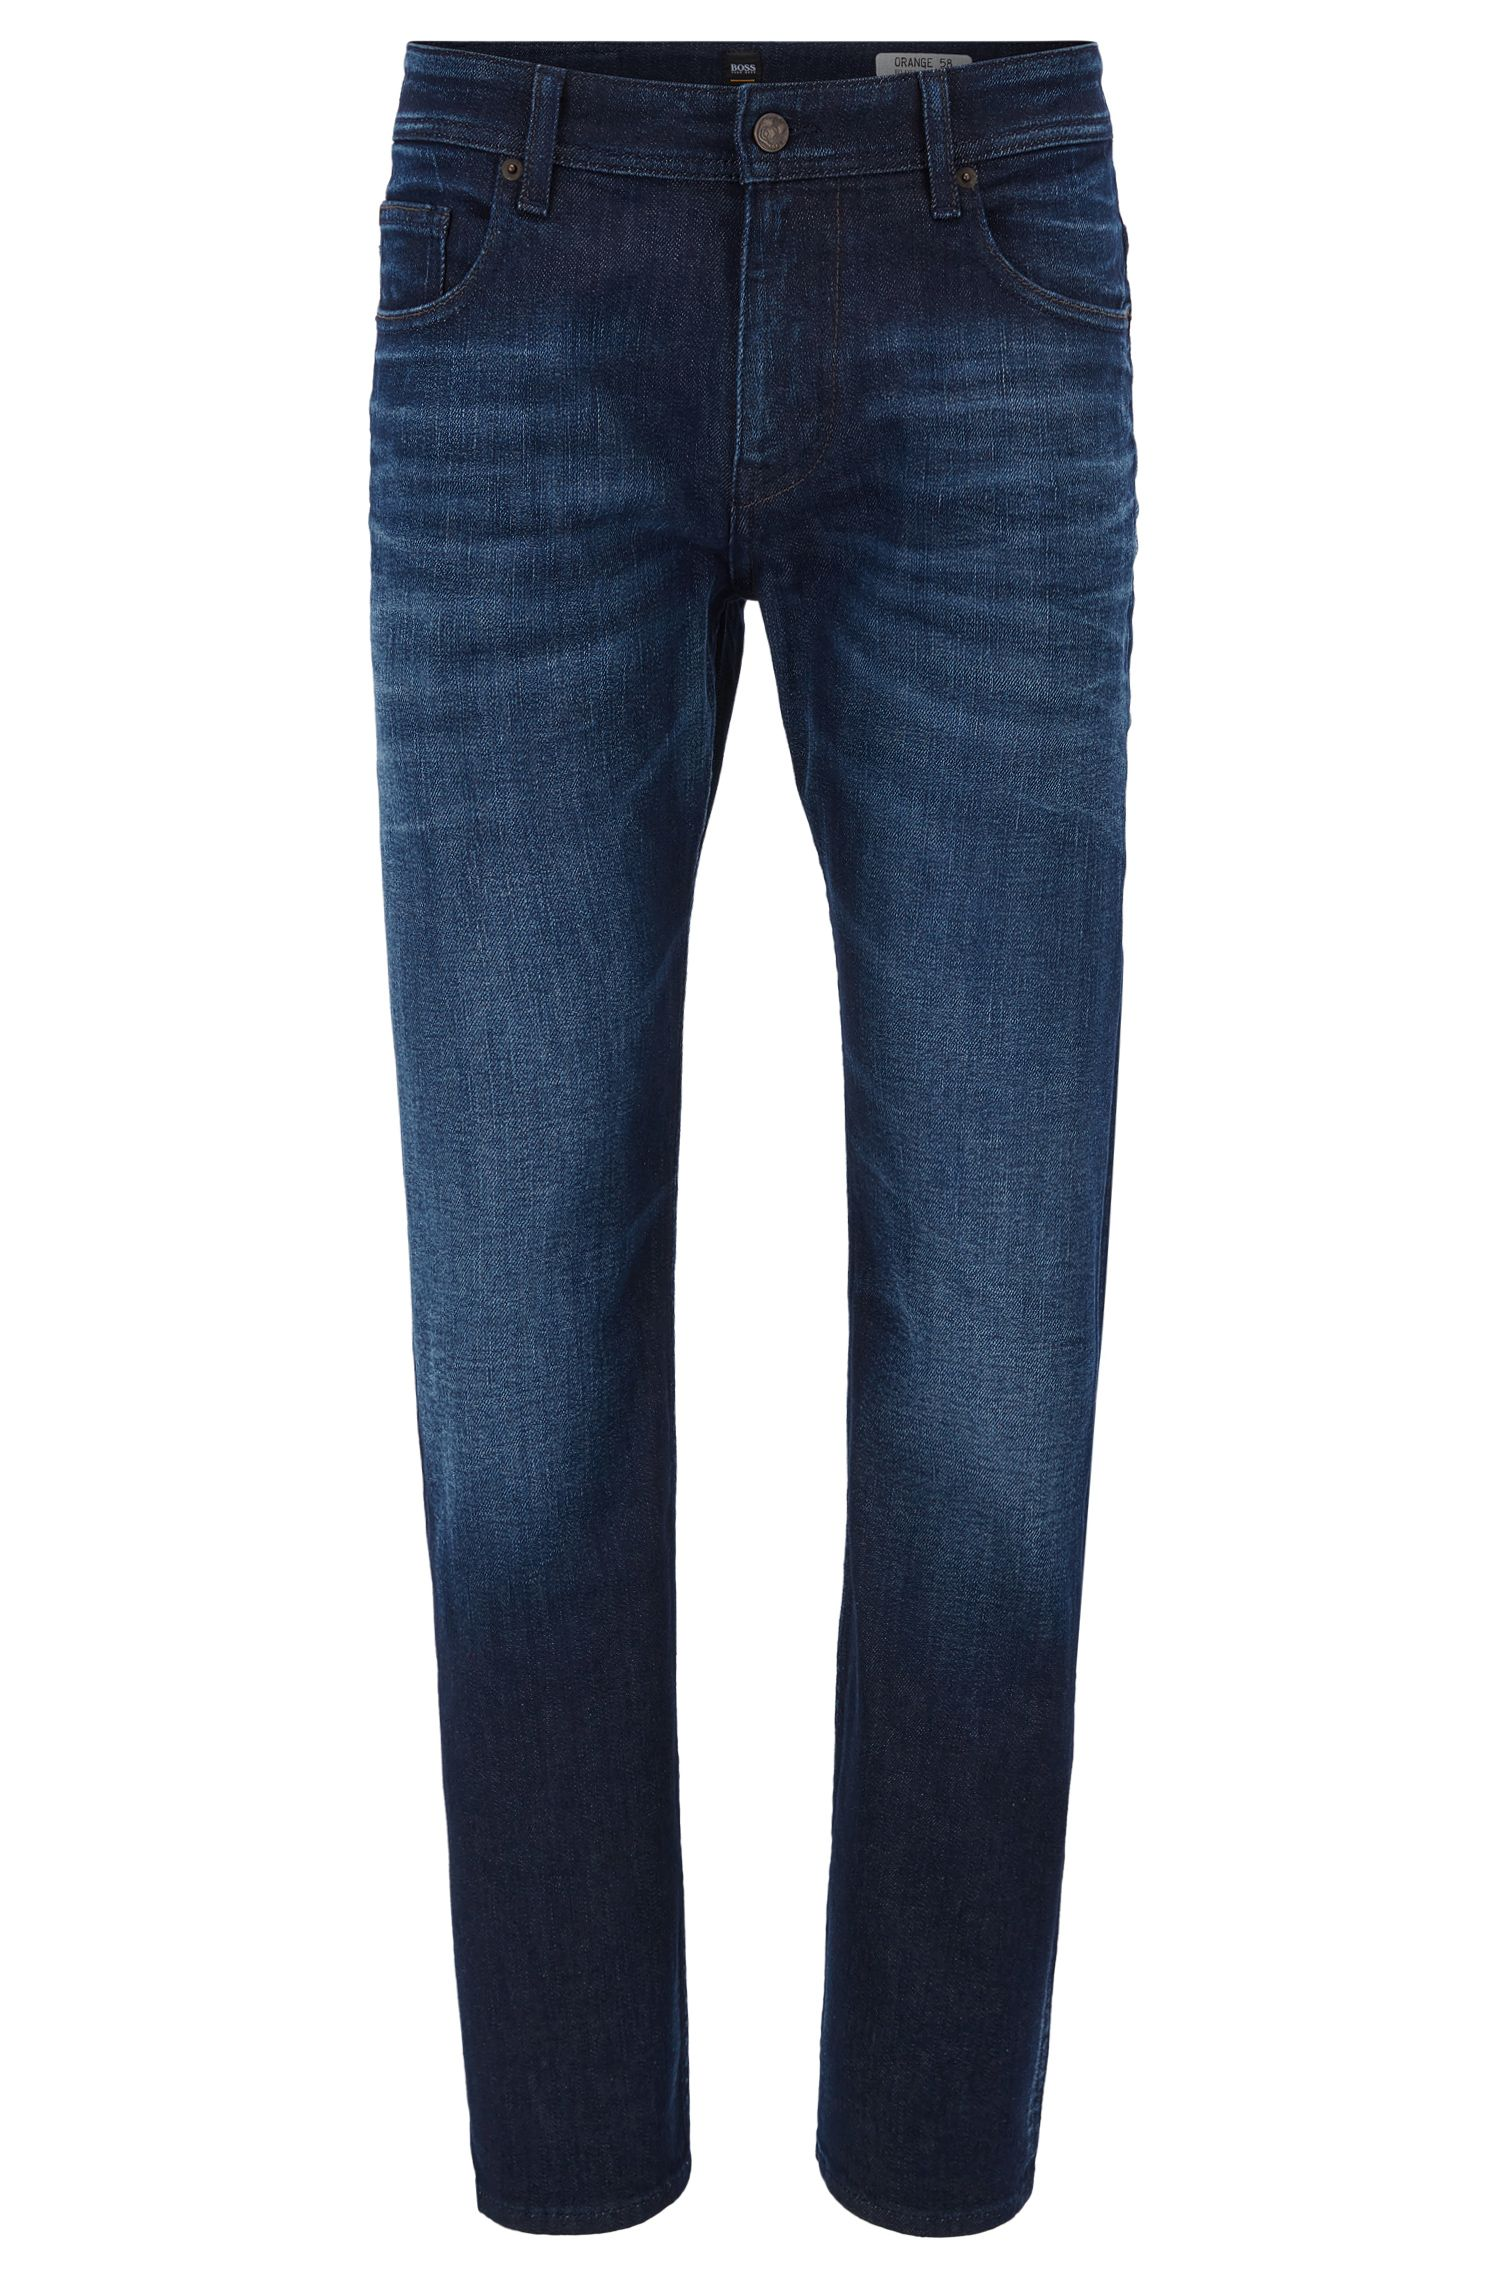 Distressed vintage-blue stretch-denim jeans in a relaxed fit